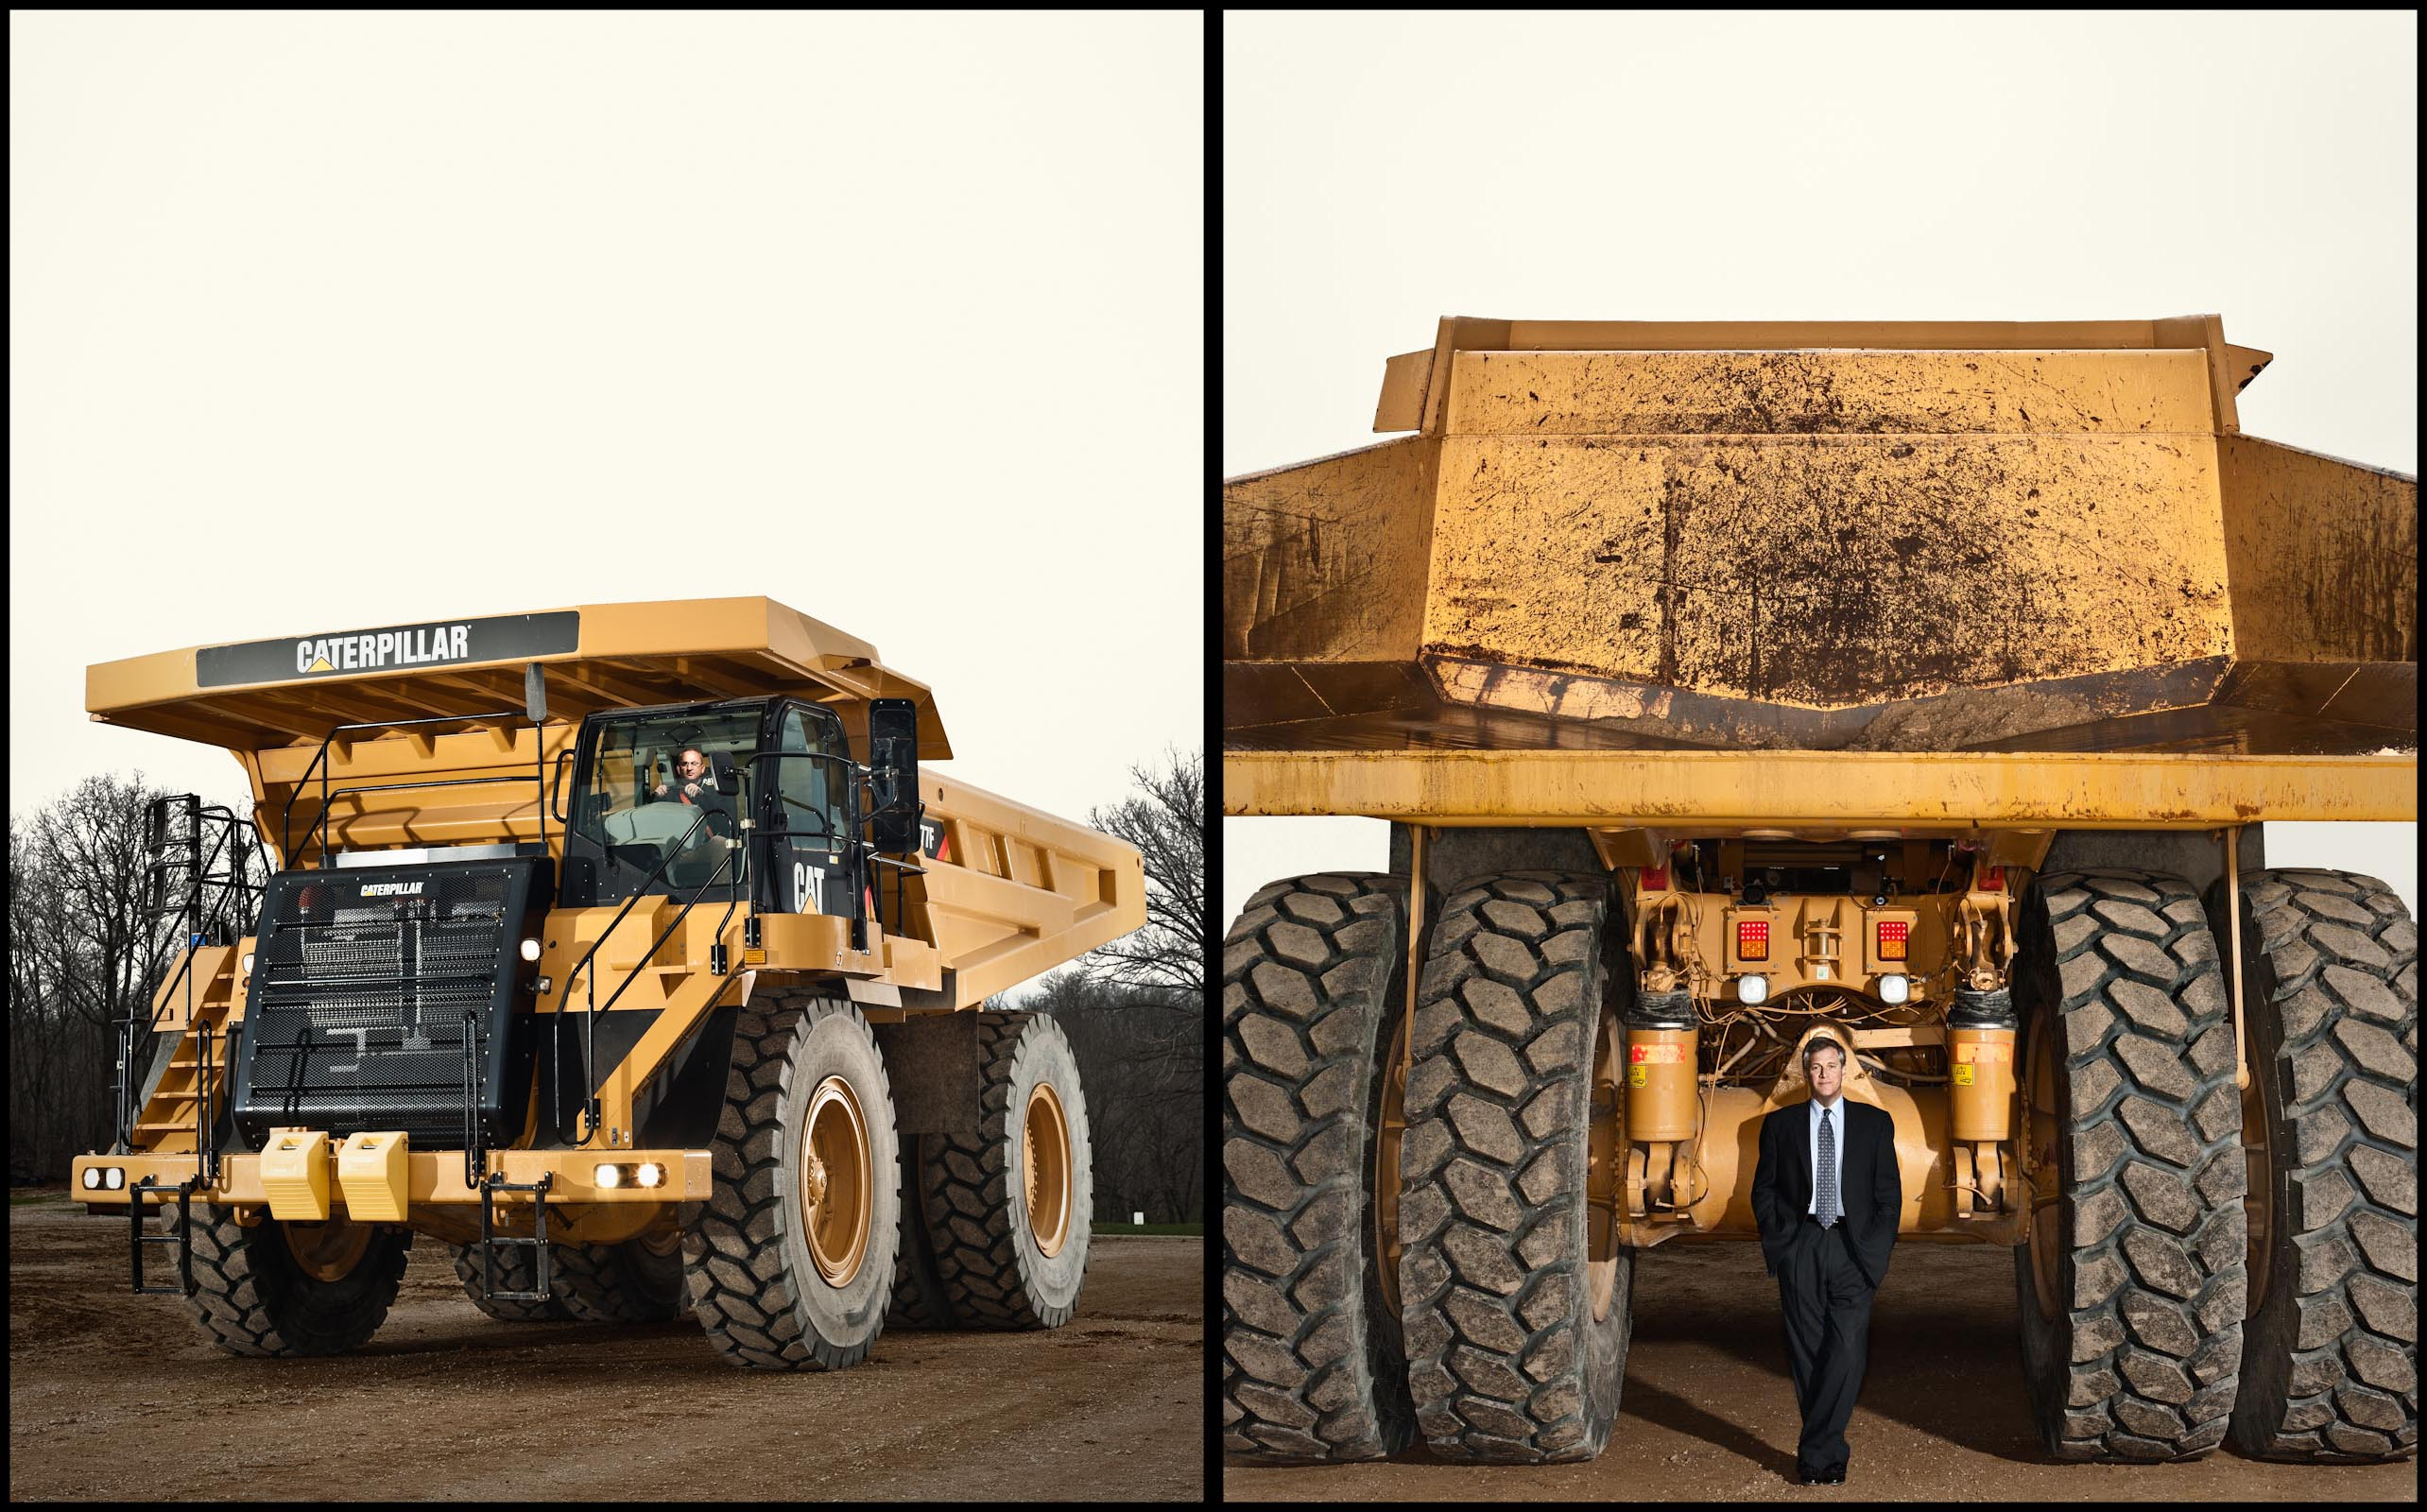 Caterpillar 777 truck and CEO Douglas Oberhelman - Peoria, IL - Fortune Magazine